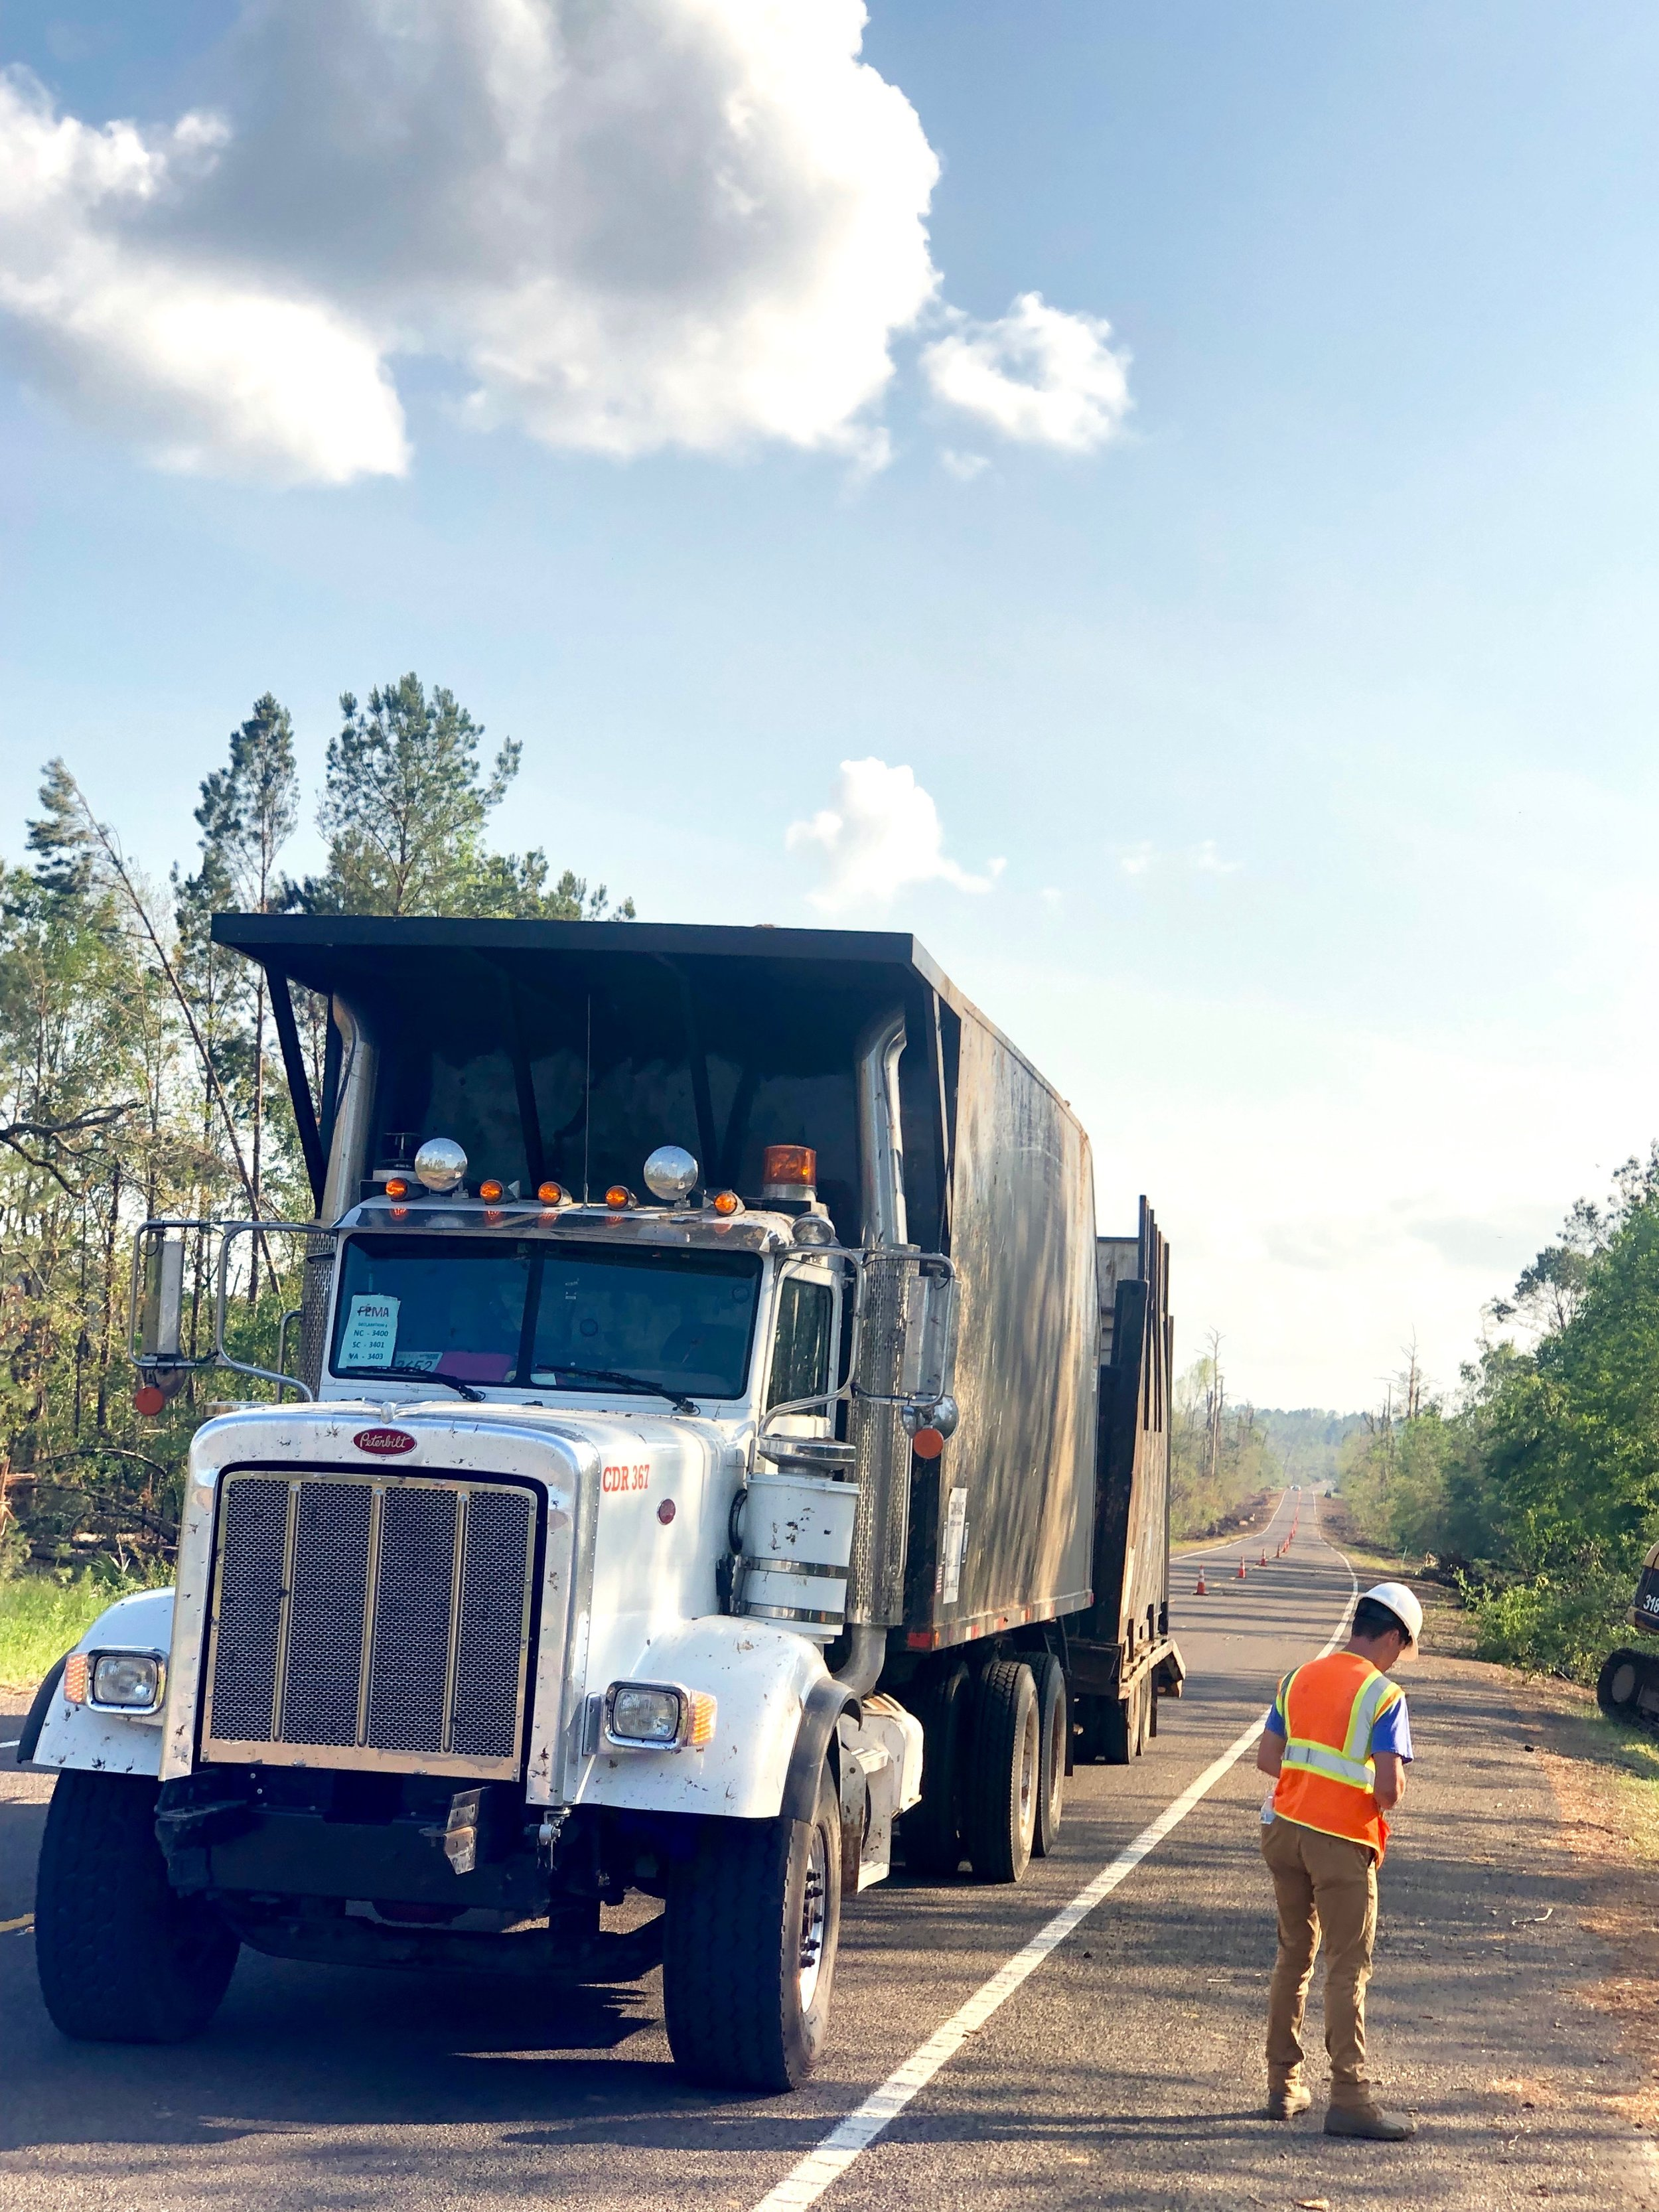 d.O.t MAINTENANCE & Right of way - With contracts in over 40 counties throughout Alabama, Cahaba is a trusted contractor when it comes to maintaining our infrastructure. When disaster strikes, Cahaba is also there to provide emergency services when called upon.